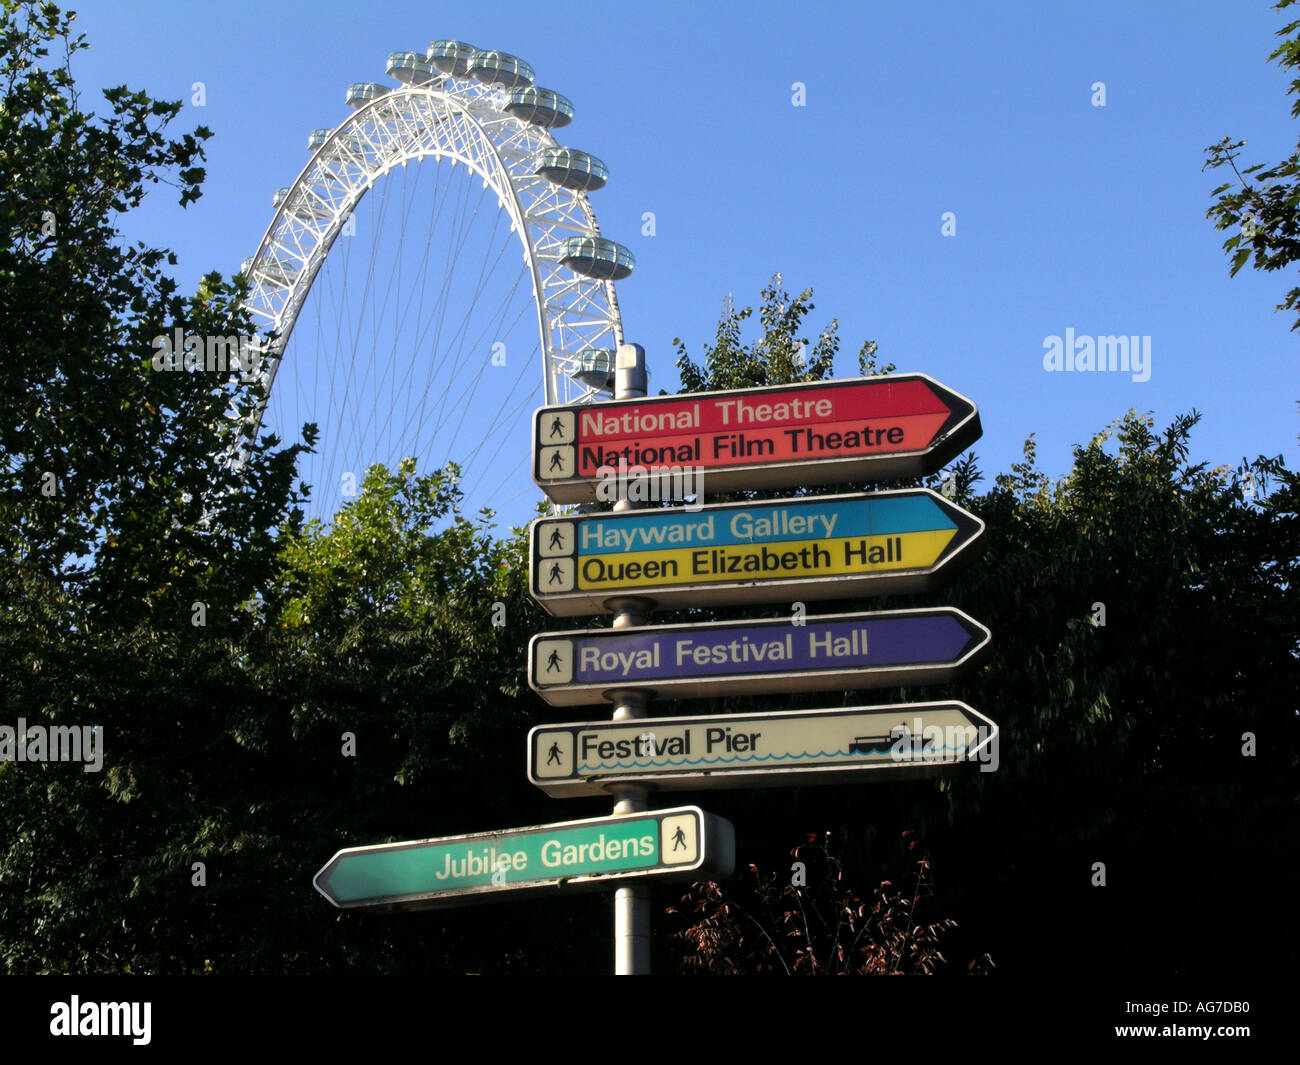 London attractions signpost - Stock Image